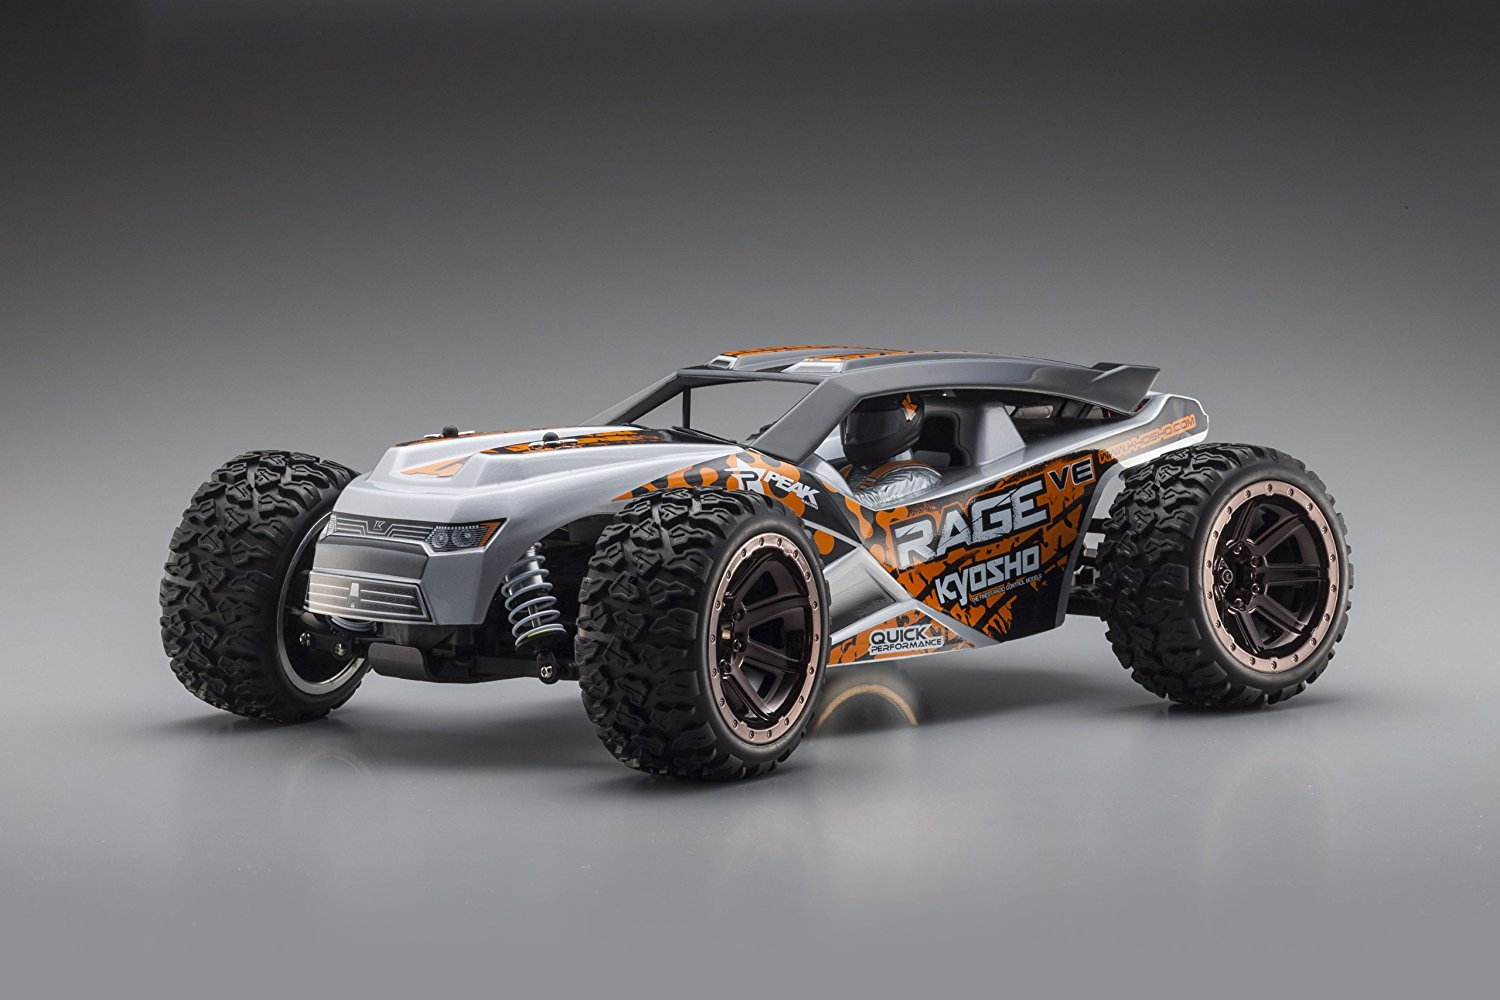 Kyosho EP 4WD R/S RAGE VE Truck (1/10 Scale)